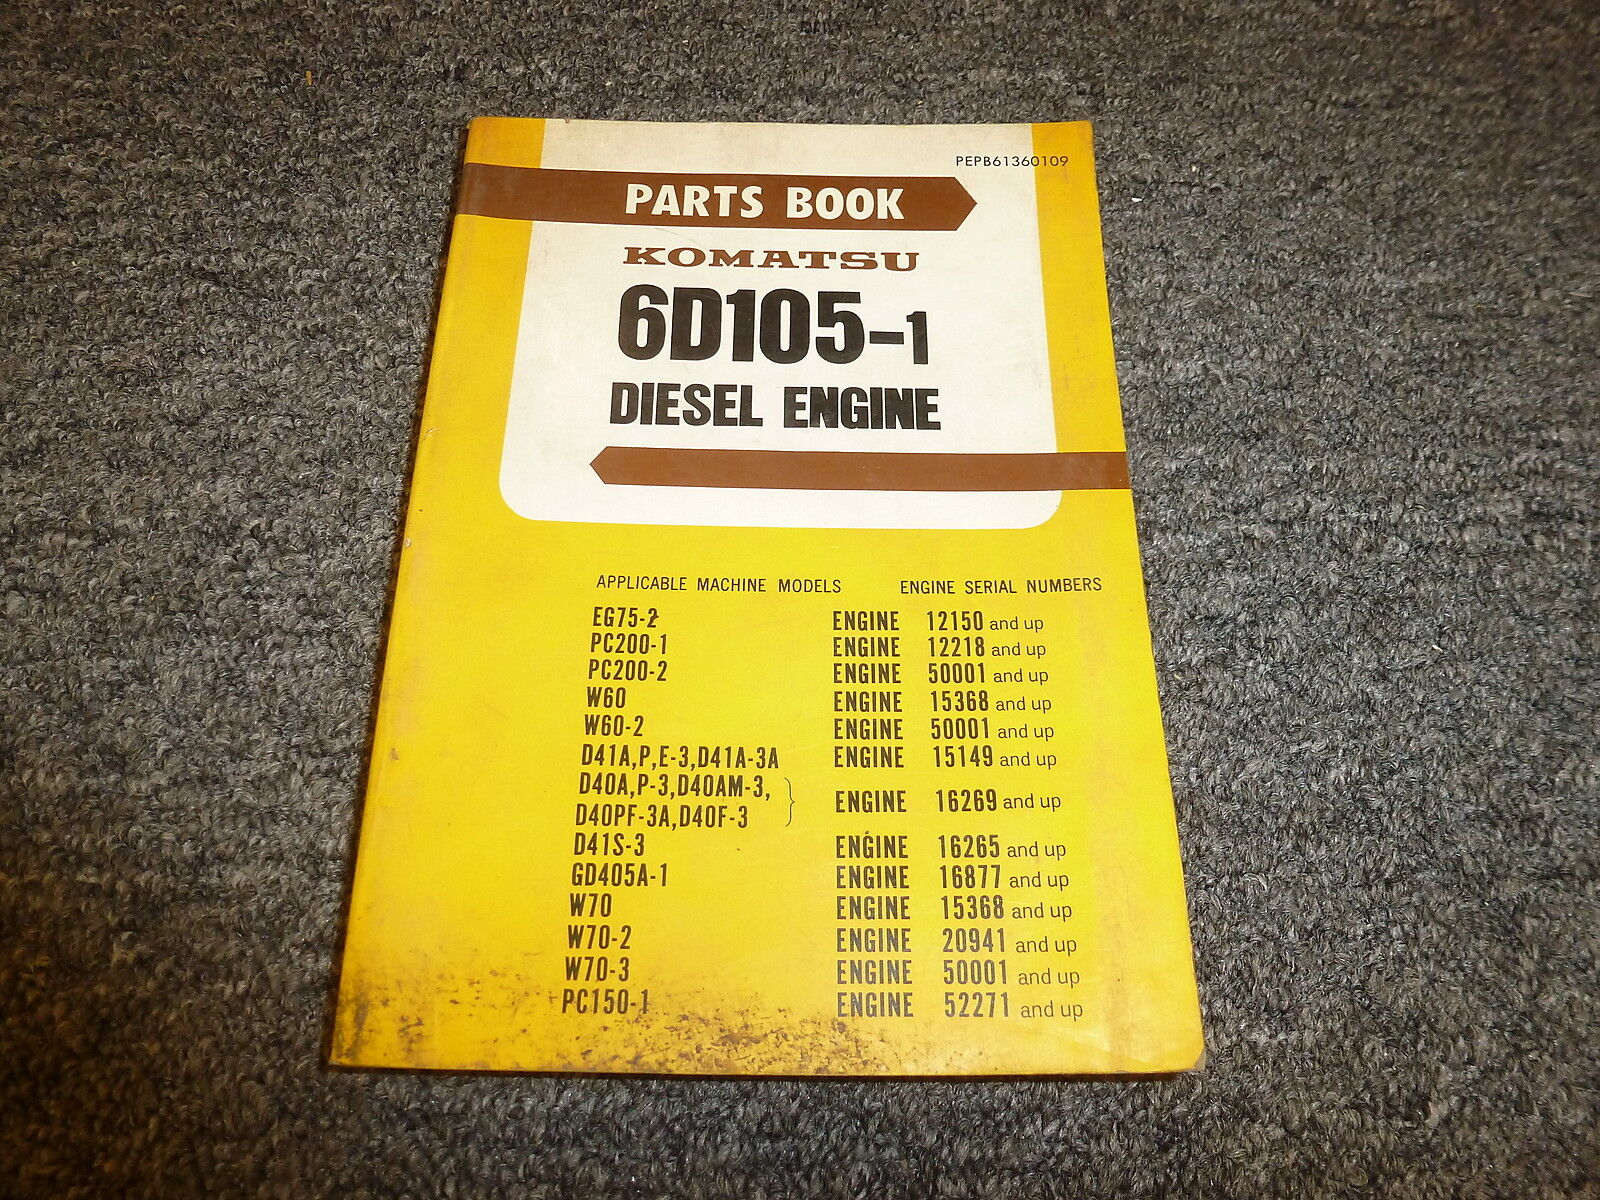 Komatsu 6D105-1 Diesel Engine Parts Catalog Manual 1 of 1Only 1 available  ...